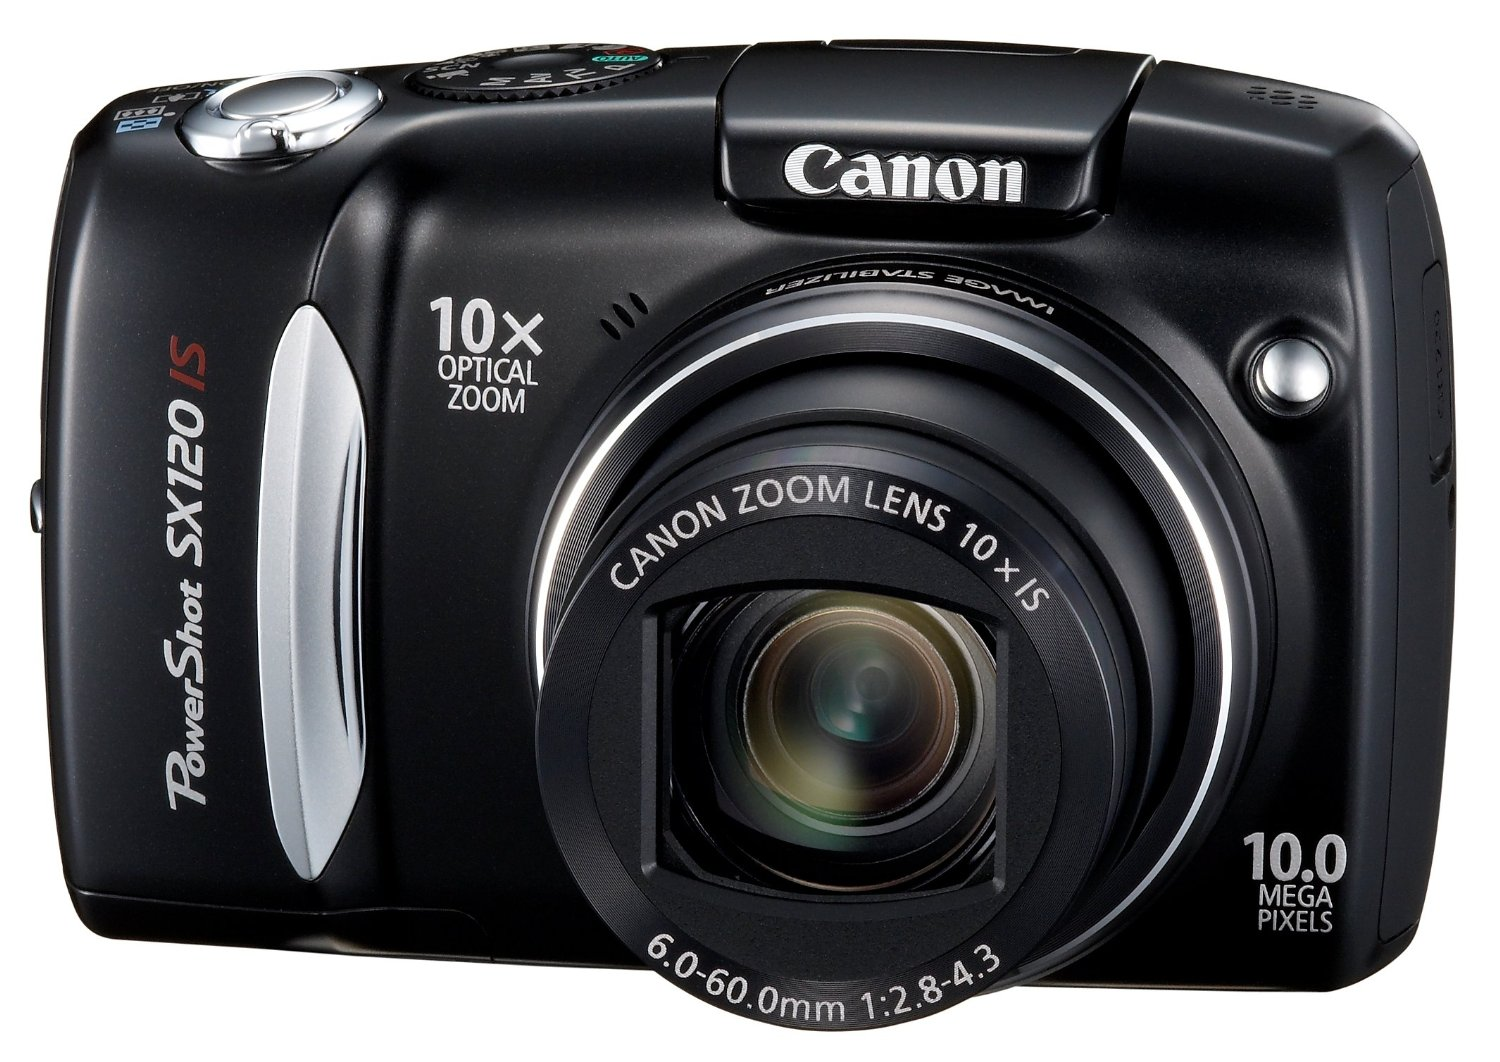 canon 6d experience the still photography guide to operation and image creation with the canon eos 6d